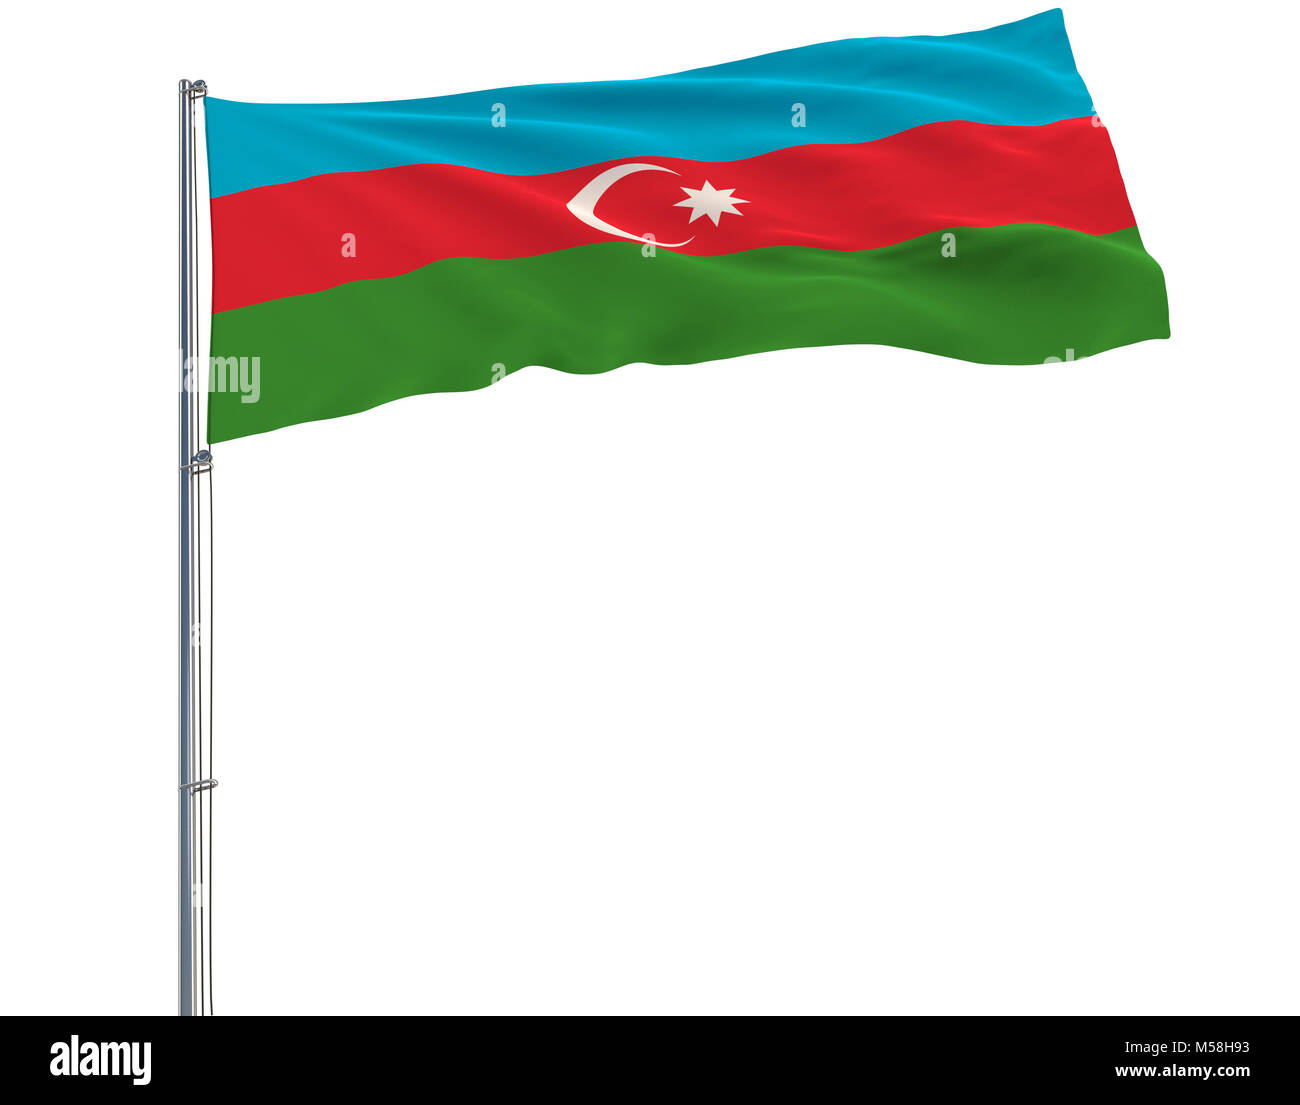 Flag of Azerbaijan on the flagpole fluttering in the wind on white background, 3d rendering - Stock Image